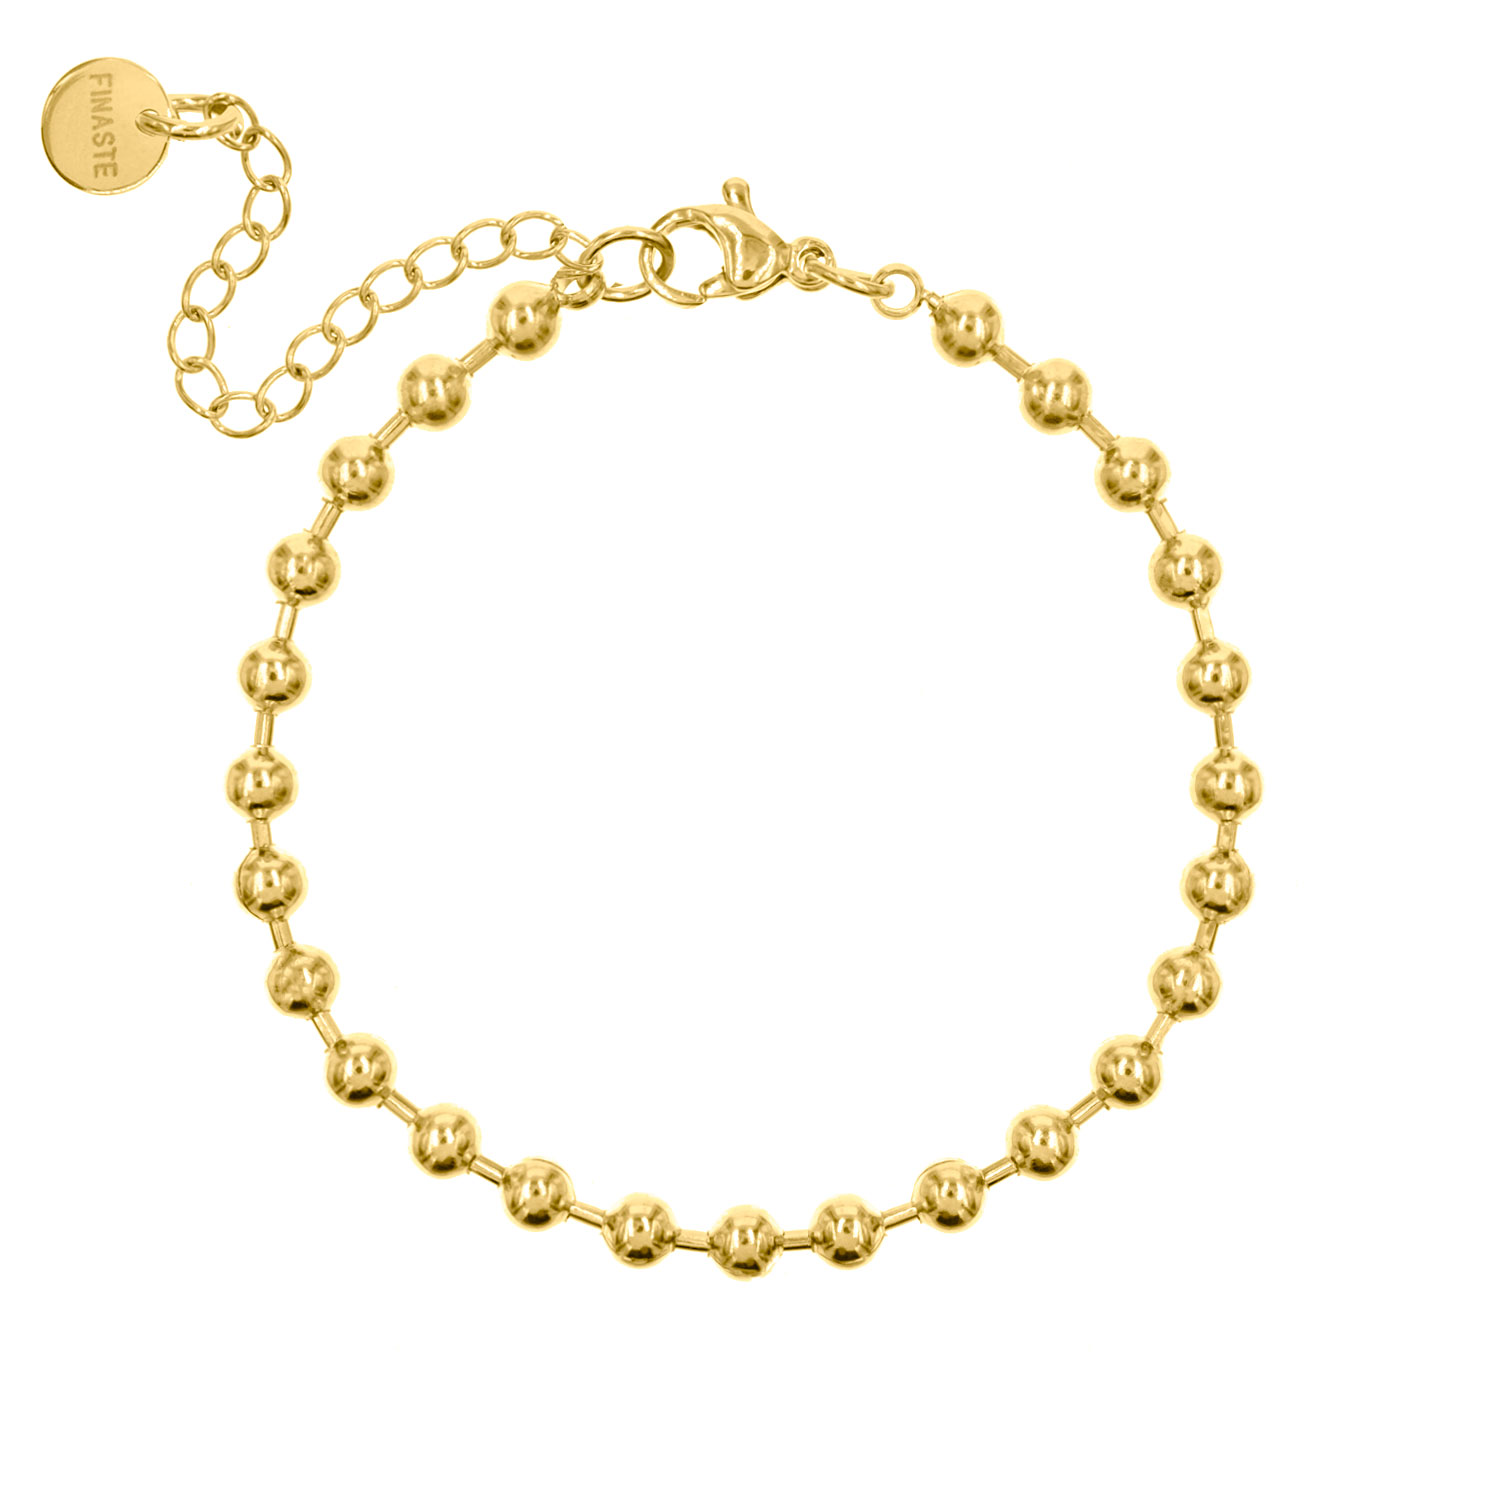 Schakelarmband Bolletjes Gold Plated